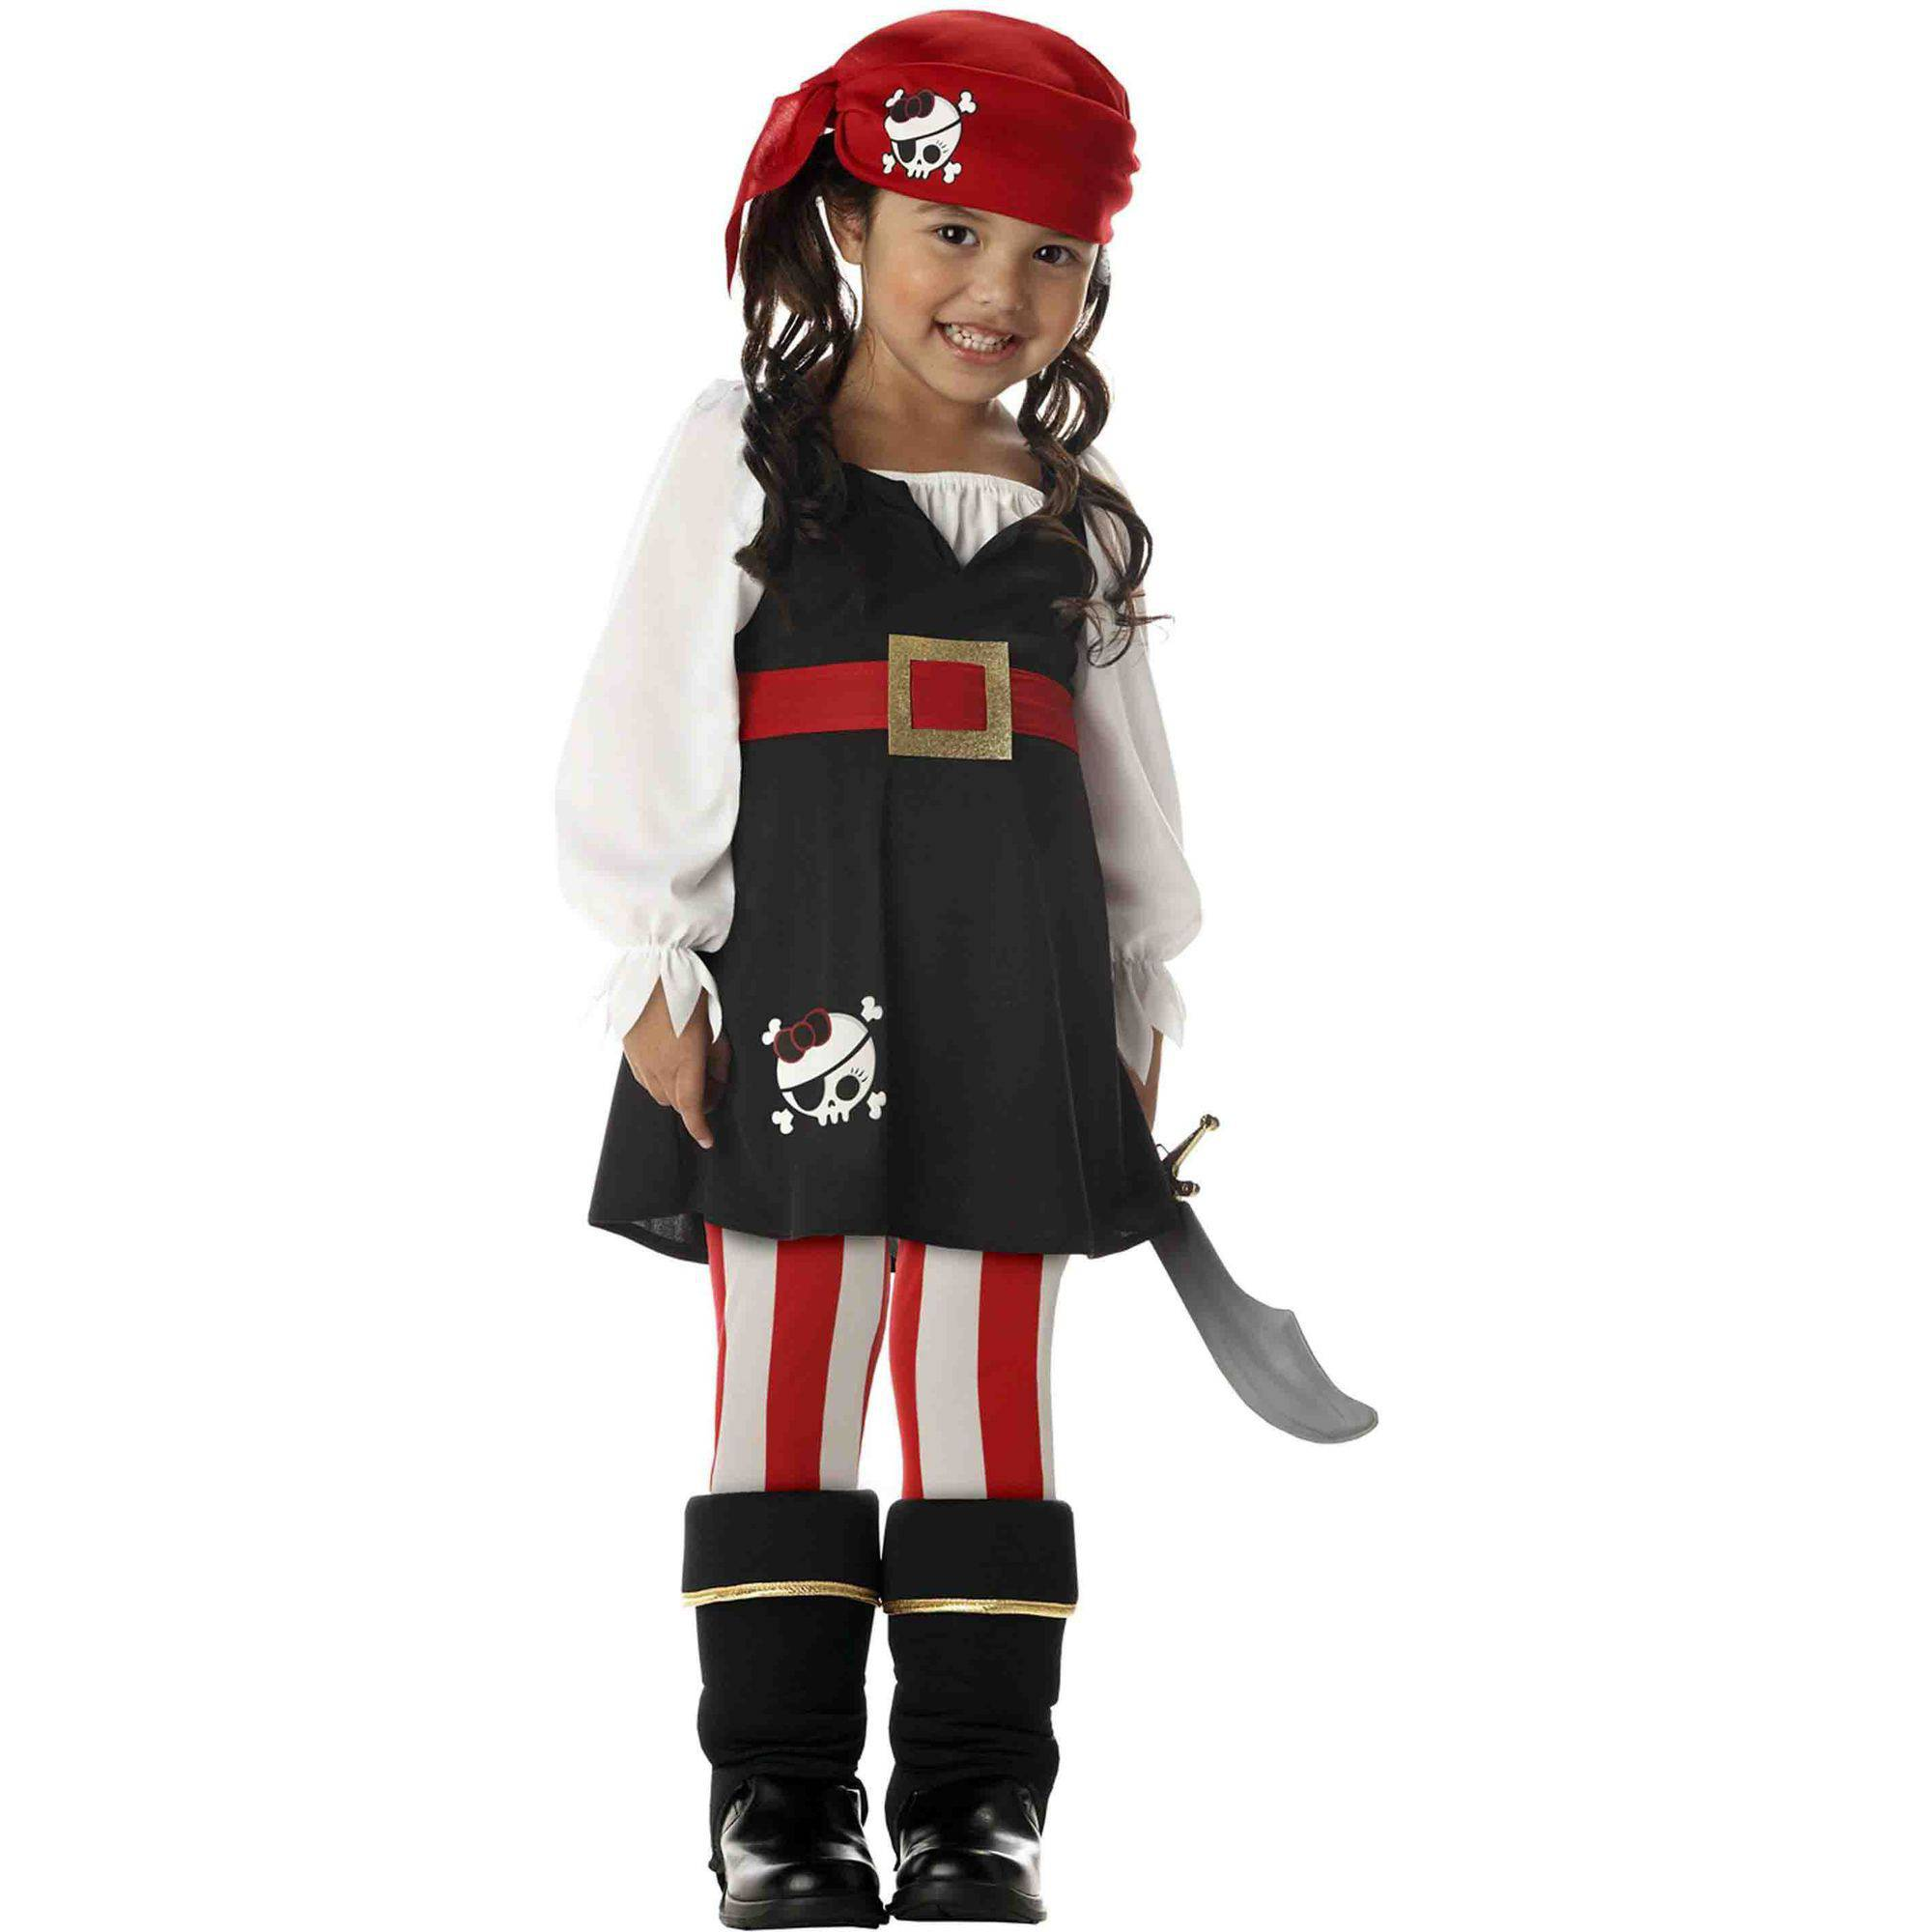 Precious Lil' Pirate Child Halloween Costume by Generic